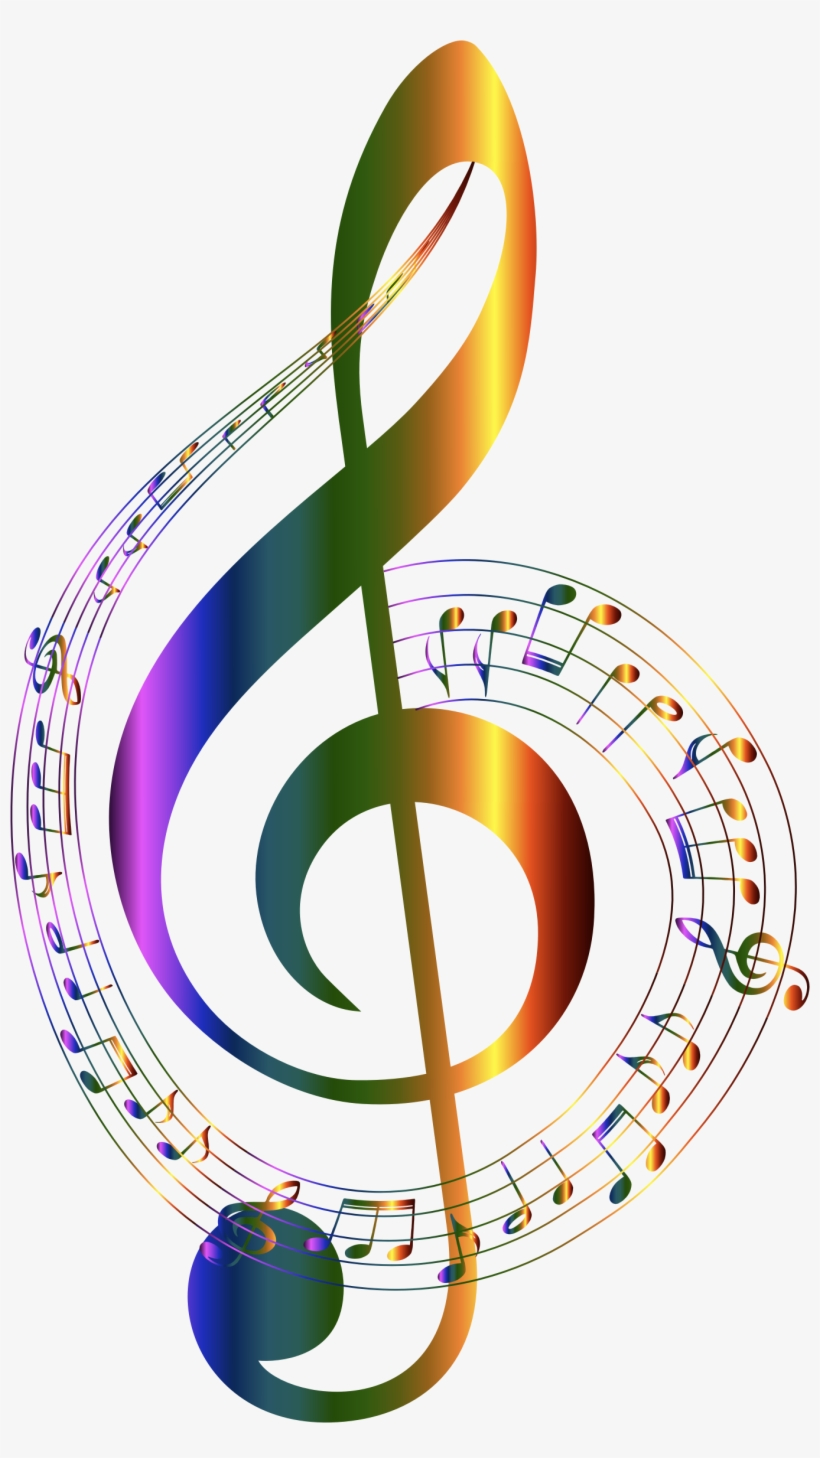 Chromatic Musical Notes Typography No Background By - Transparent Background Music Notes Transparent PNG - 1354x2342 - Free Download on NicePNG